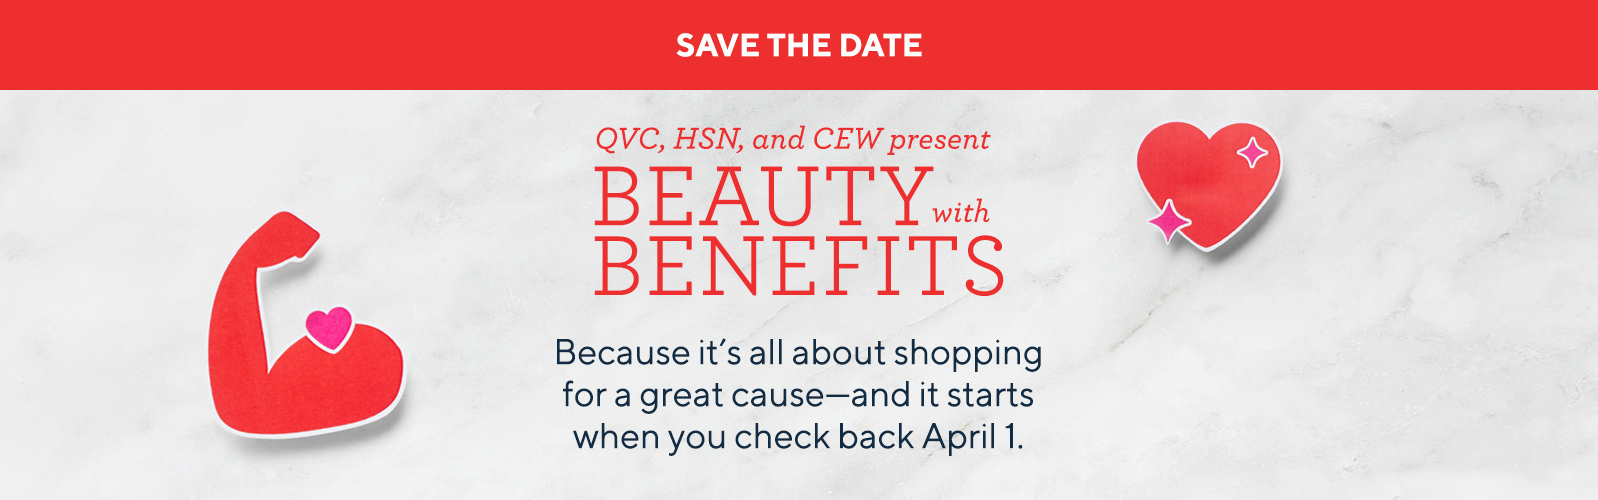 Save the Date. QVC, HSN, and CEW present Beauty with Benefits. Because it's all about shopping for a great cause—and it starts when you check back April 1.